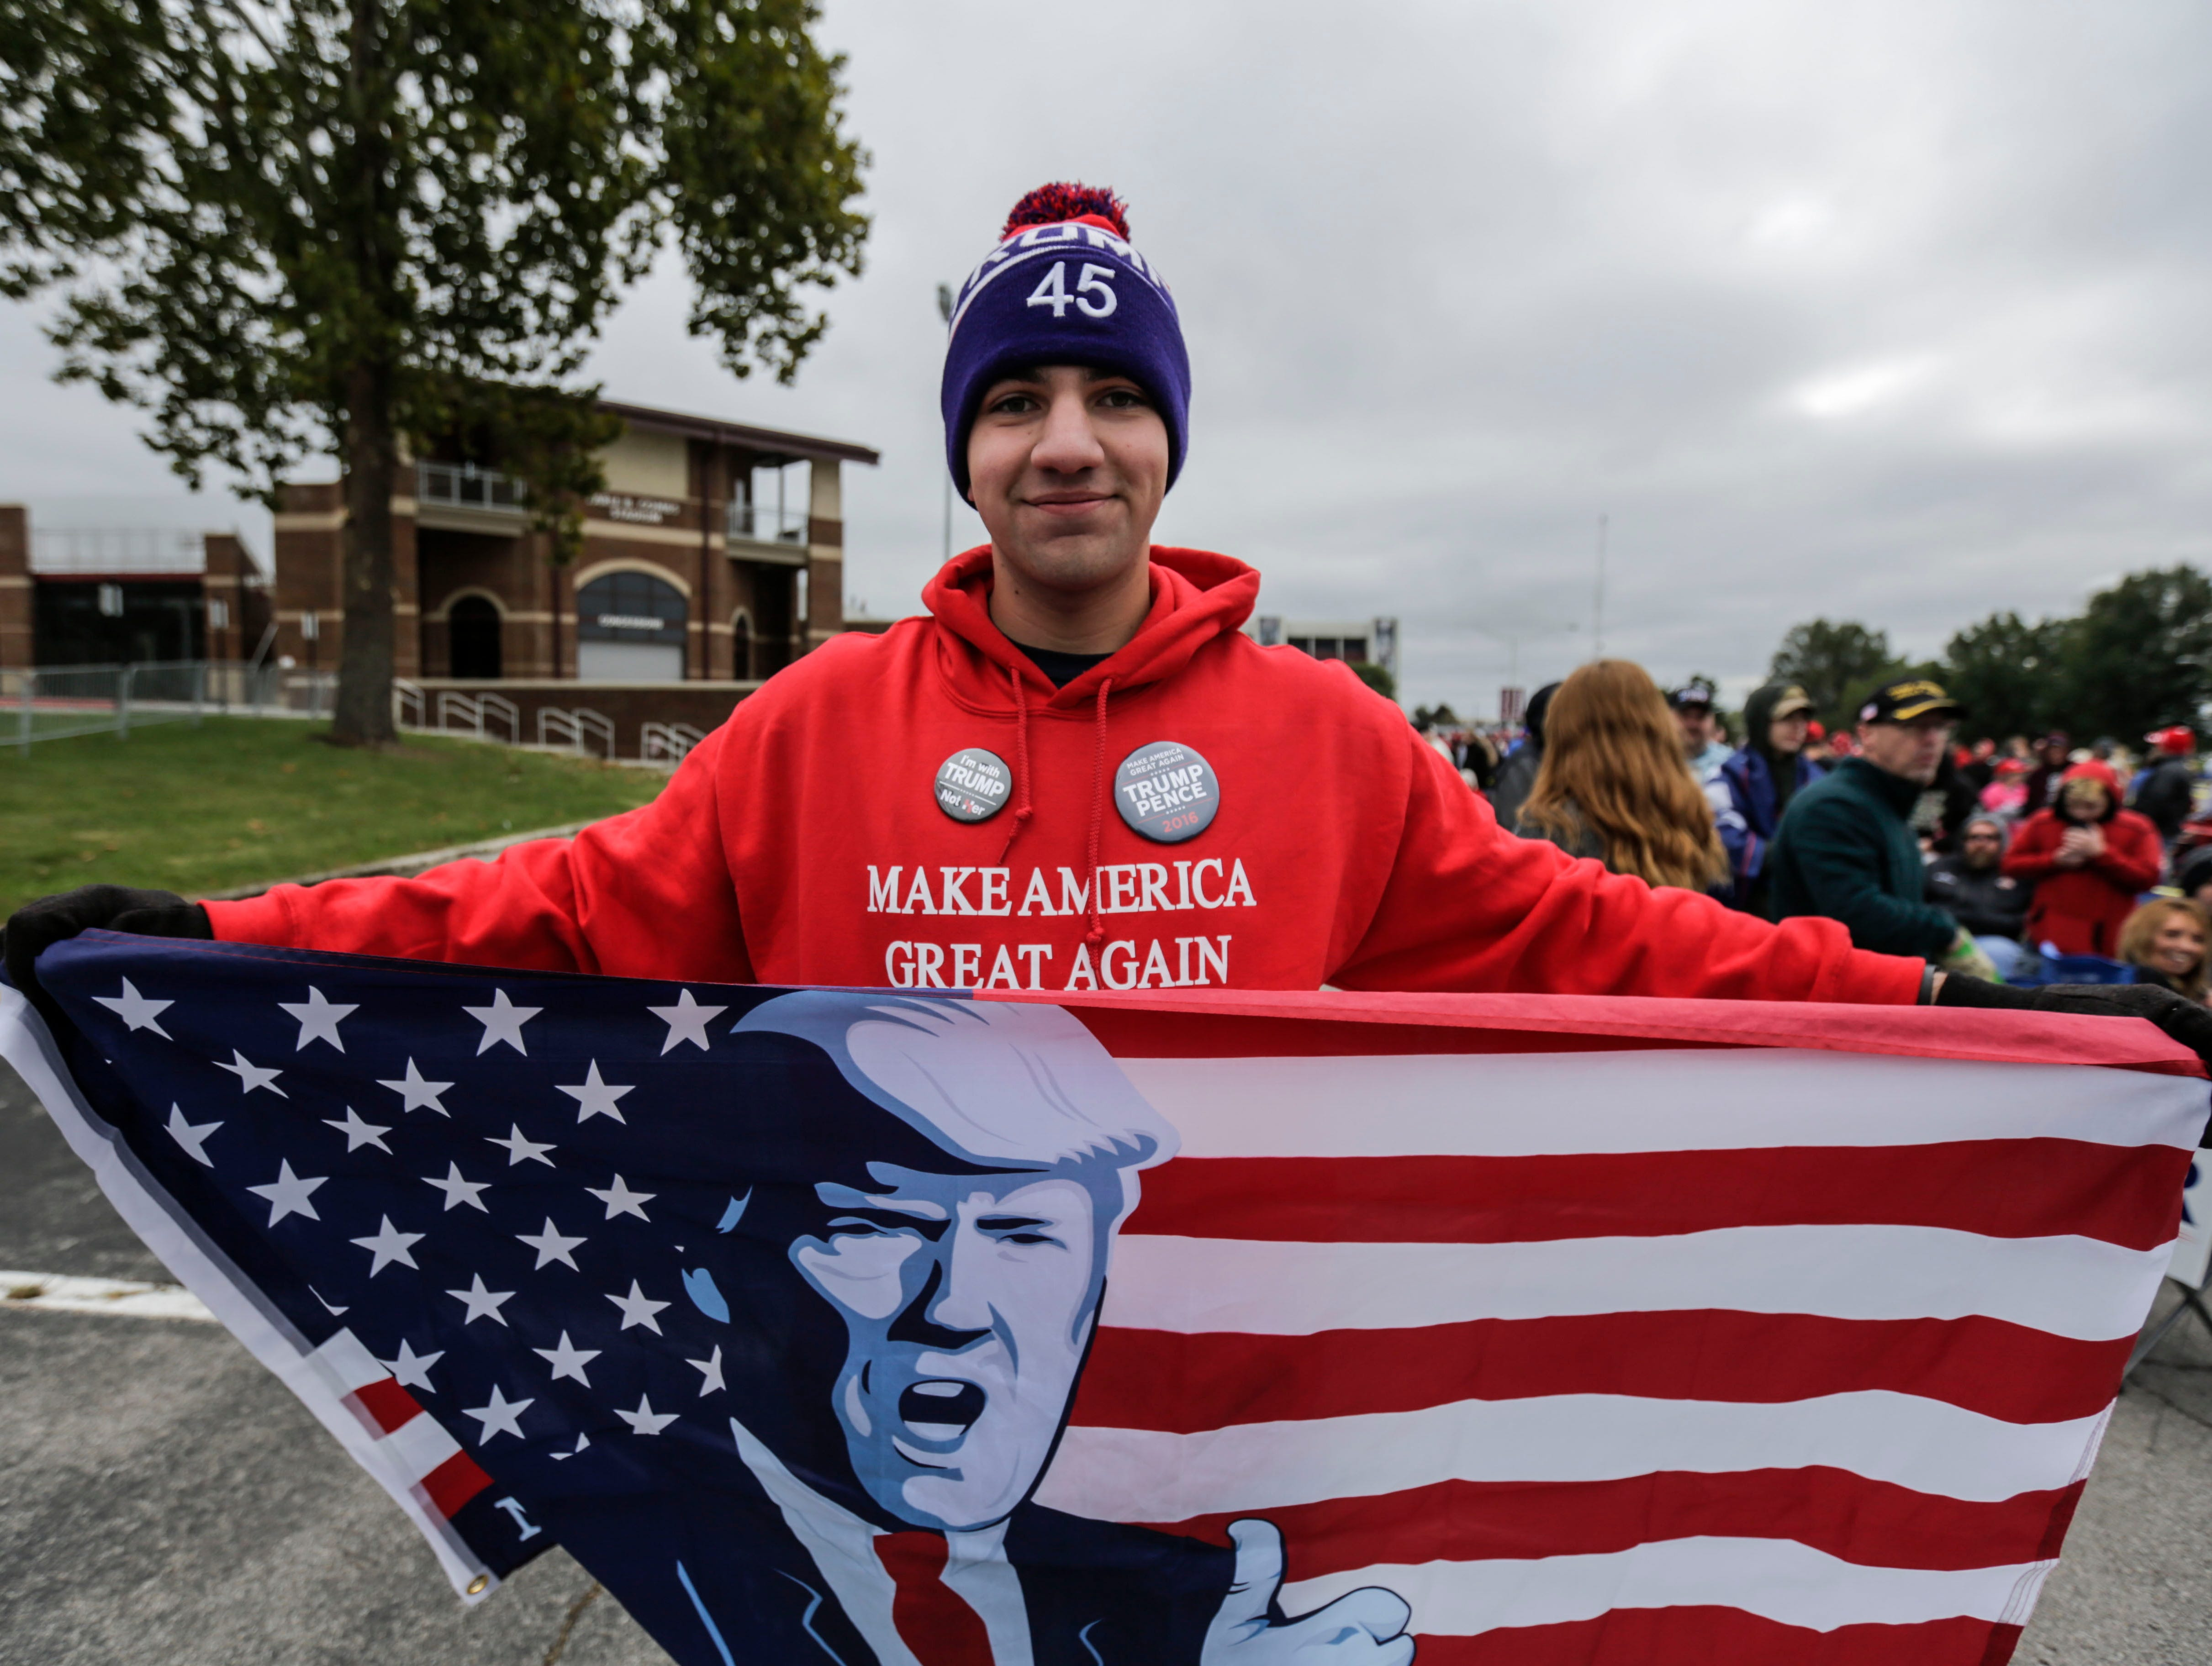 Lorenzo Esquivel is attending his 6th Trump rally. He is traveling from rally to rally to show his support for the President.